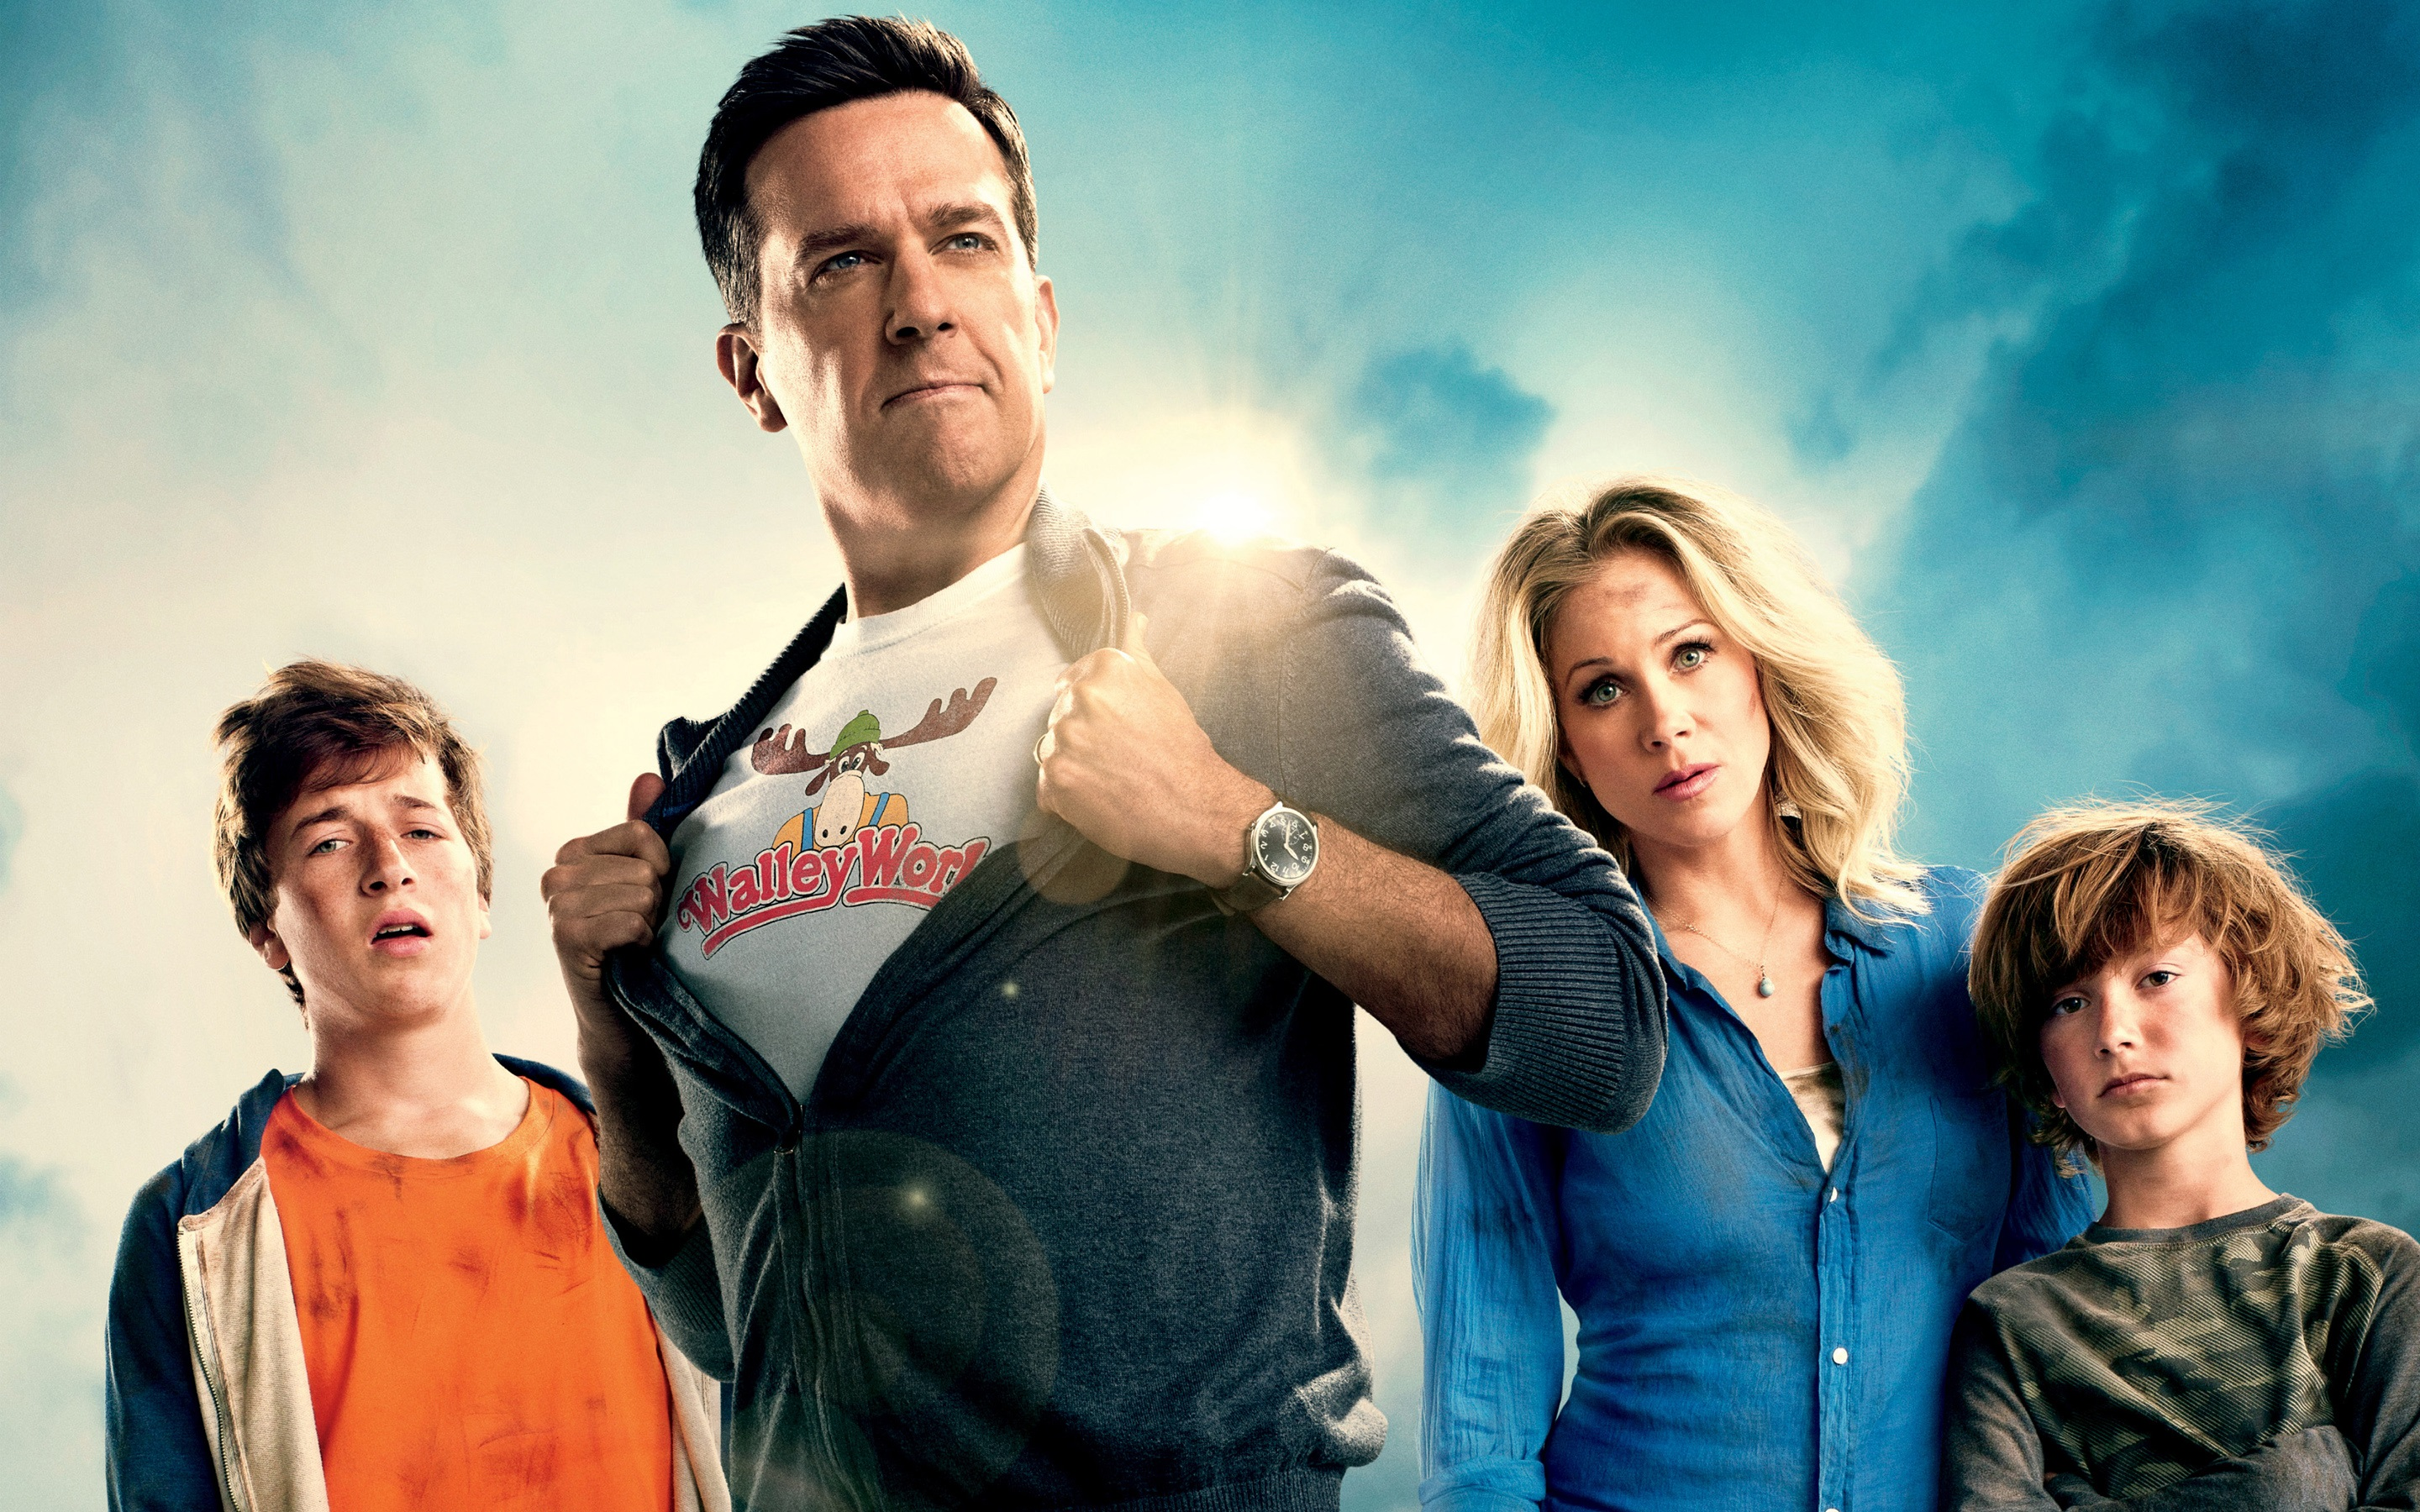 New Line Cinema presents Vacation starring Ed Helms and Christina Applegate as the Griswolds.